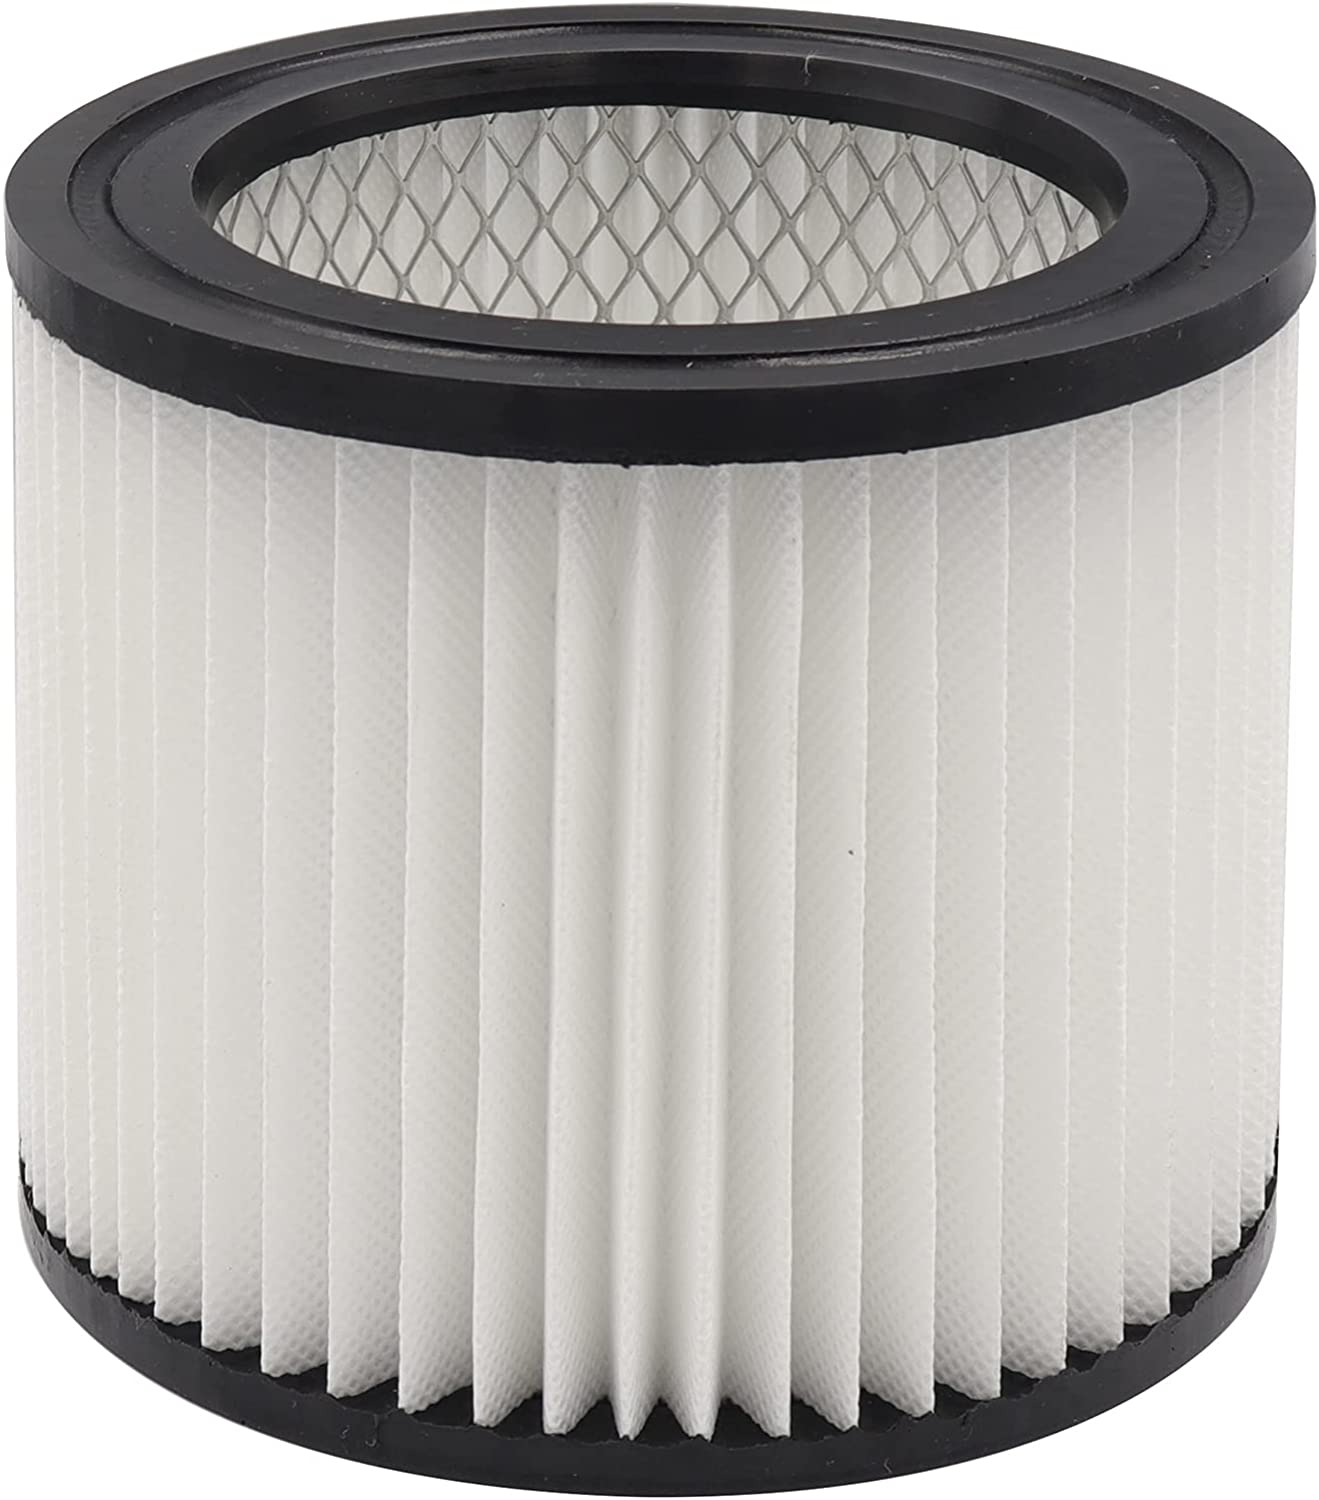 Manufacturer direct delivery Replacement 9039800 Popular popular Filter for 903-98-00 90398 903-98 952-02H87S